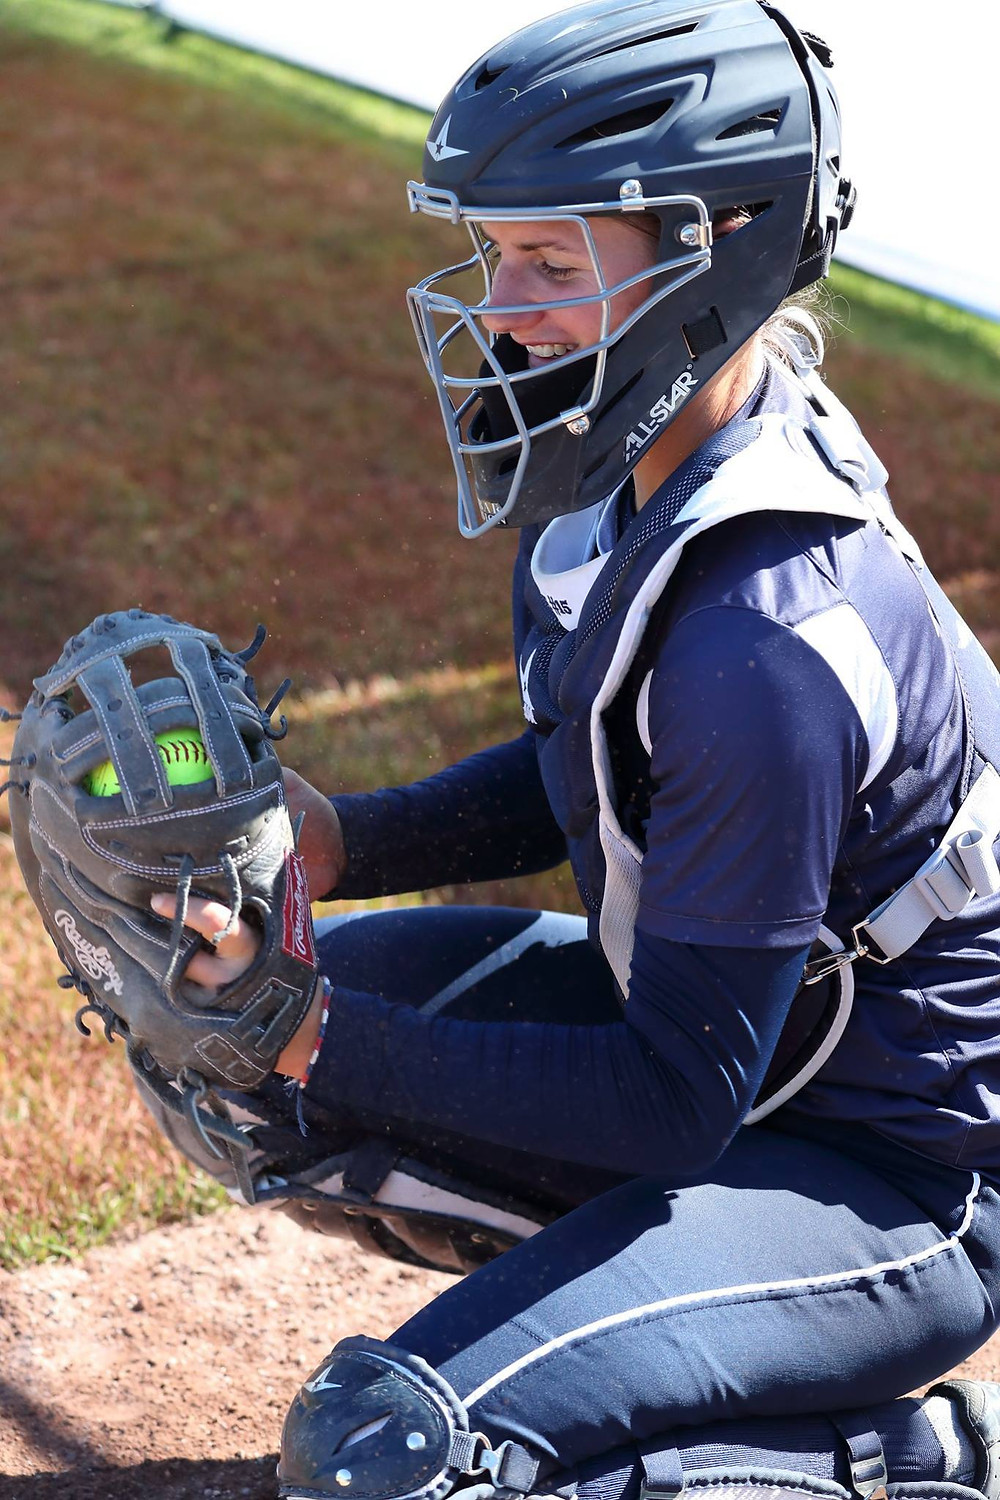 French national team catcher Camille Riera playing with her home club the Toulon Comanches